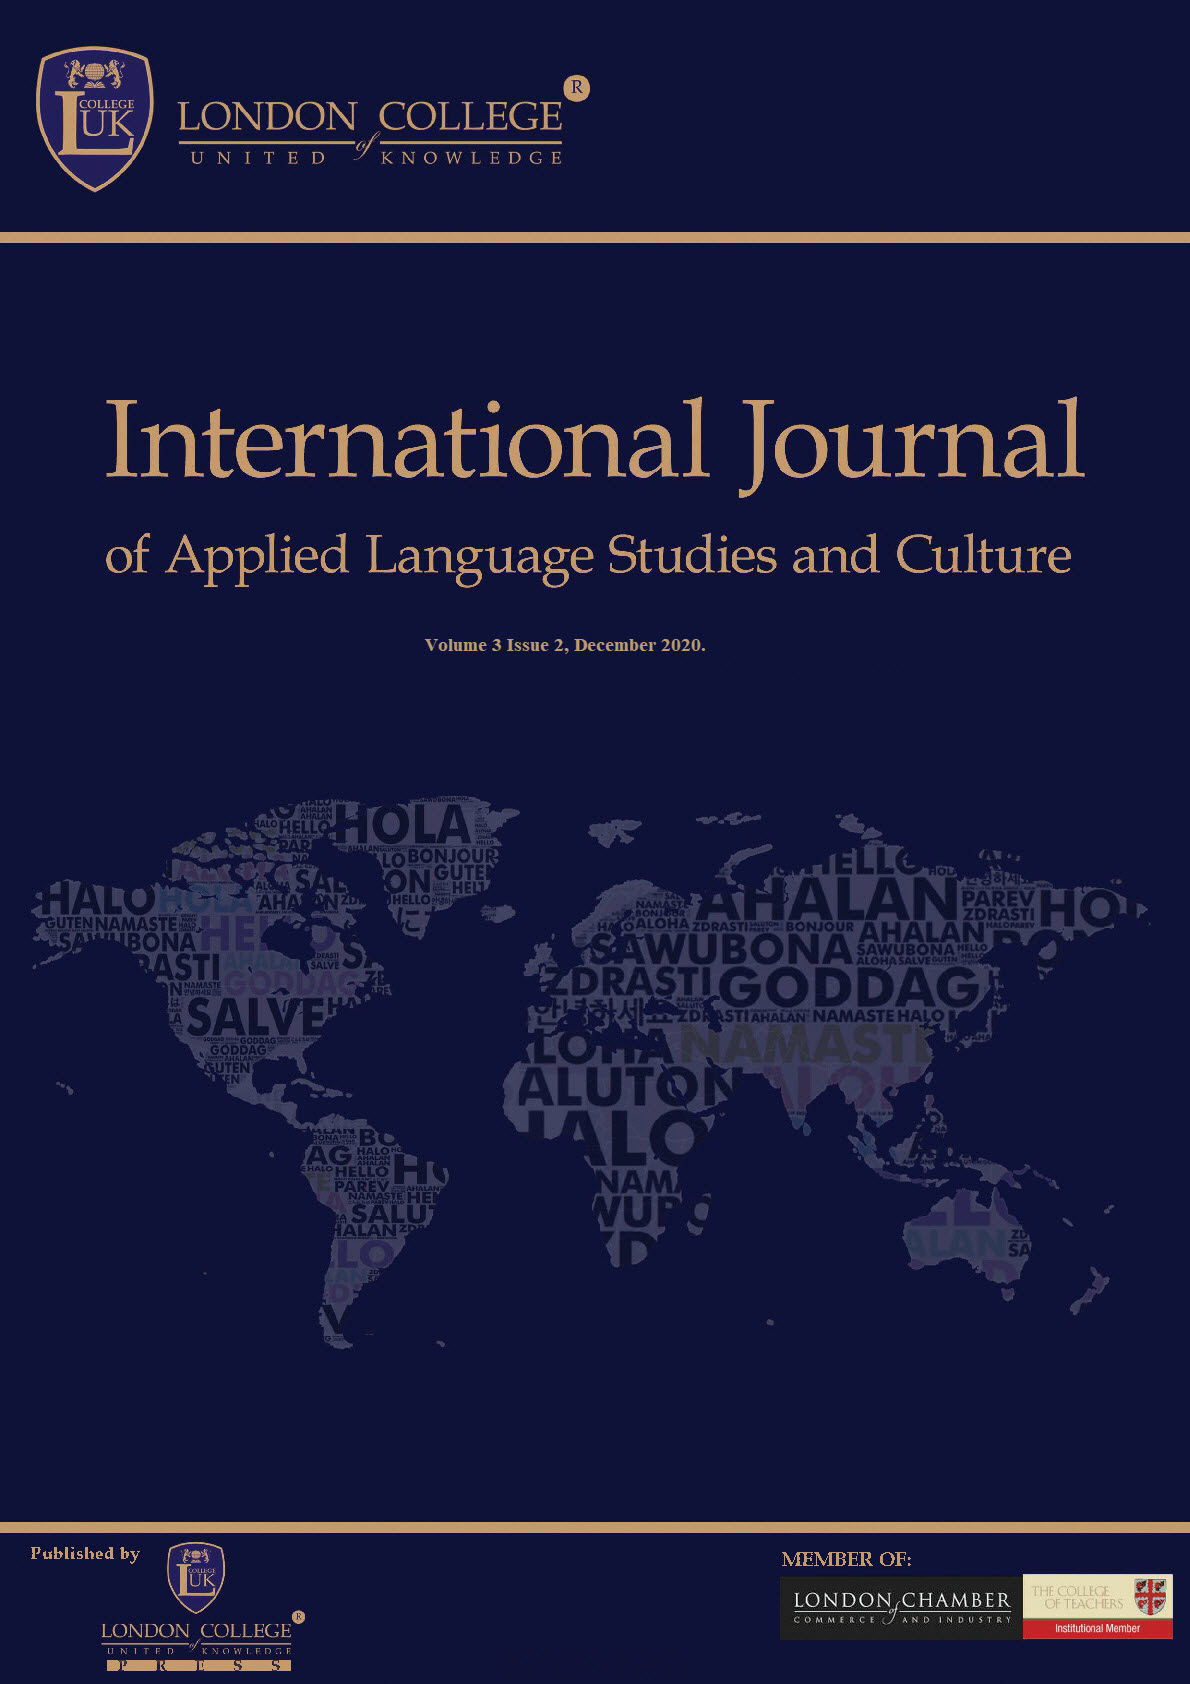 View Vol. 2 No. 2 (2019): THE INTERNATIONAL JOURNAL OF APPLIED LANGUAGE STUDIES AND CULTURE (IJALSC)